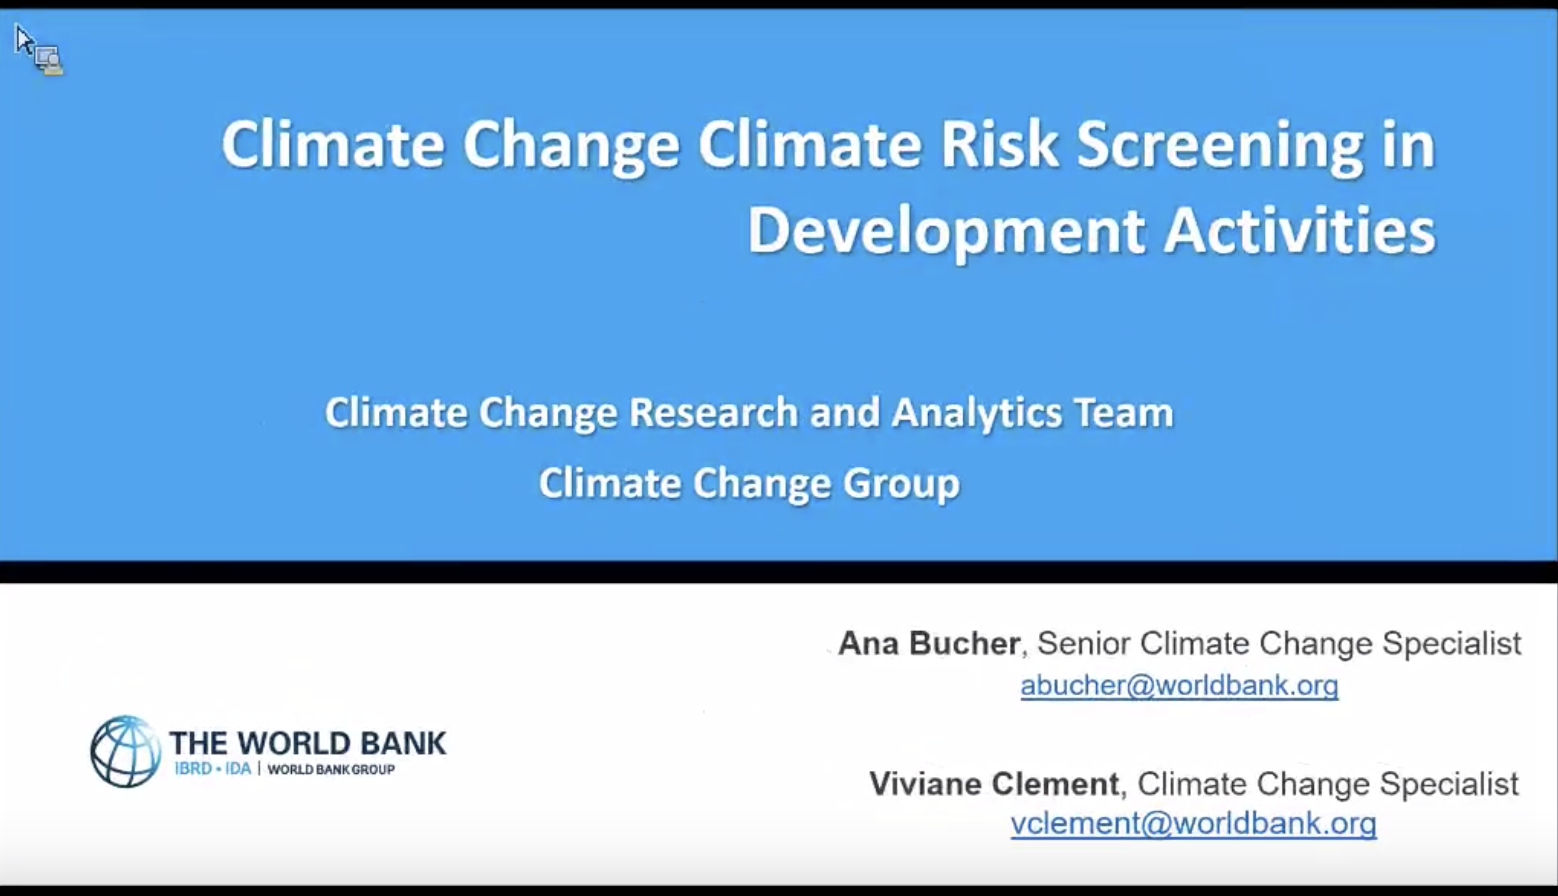 Climate Change Risk Screening in Development Activities screenshot